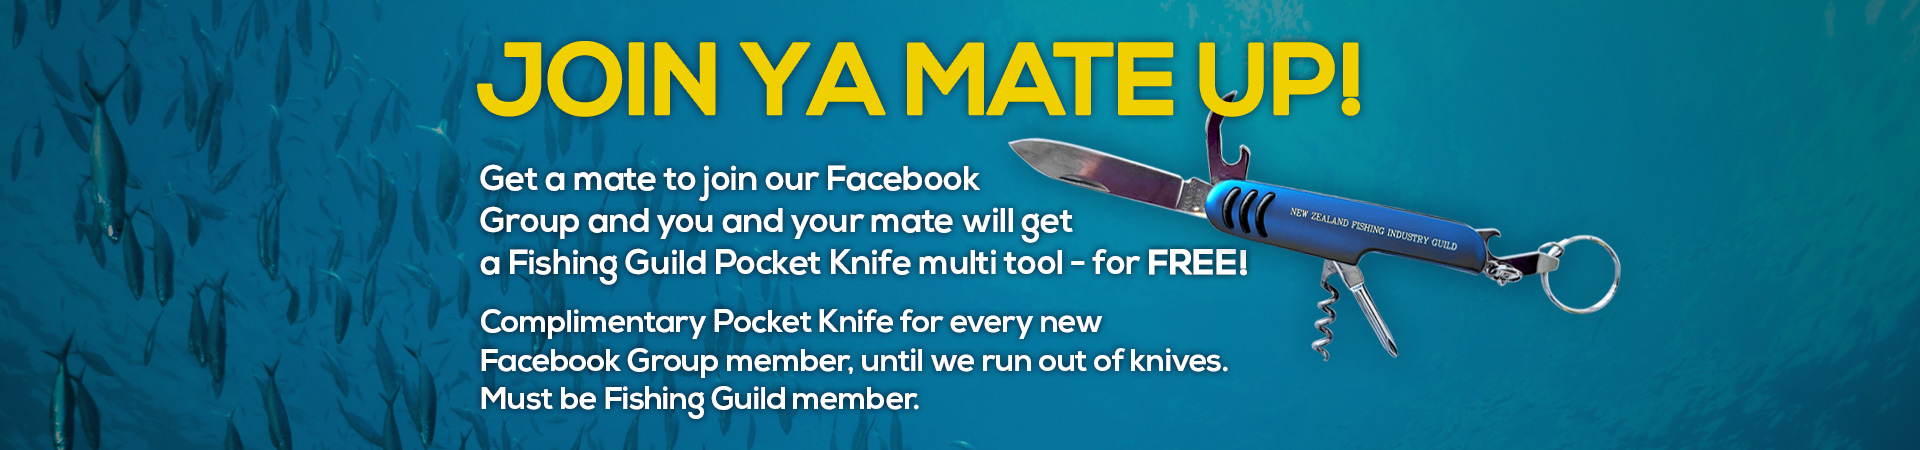 nzfig_join-ya-mate-up